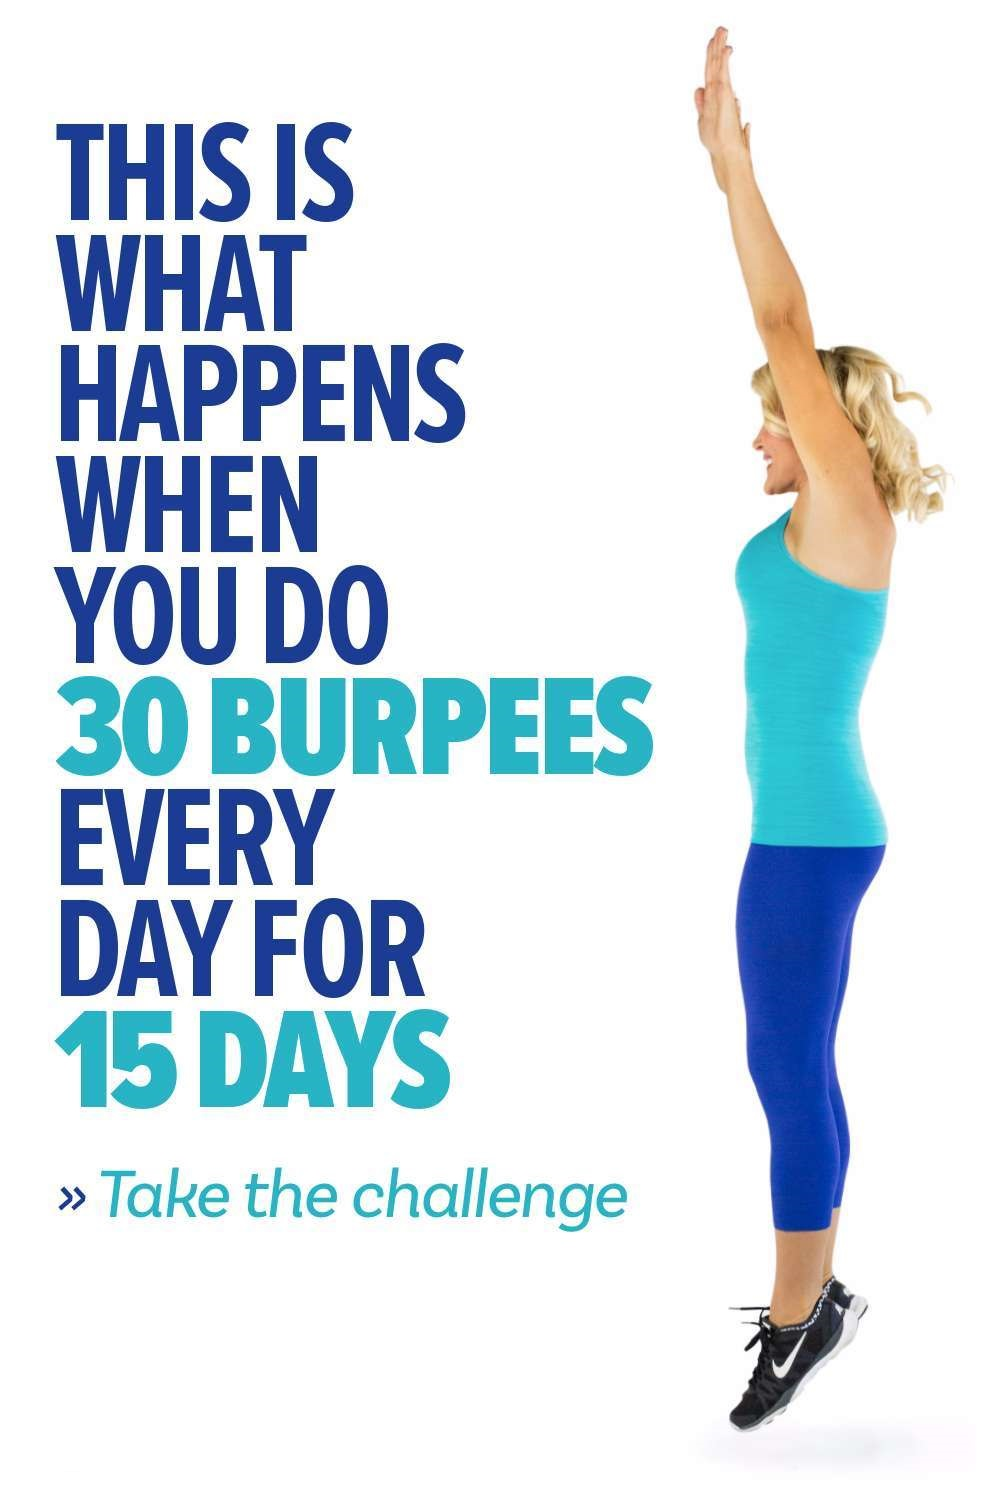 this-is-what-happens-when-you-do-30-burpee-every-day-for-15-day-20059941